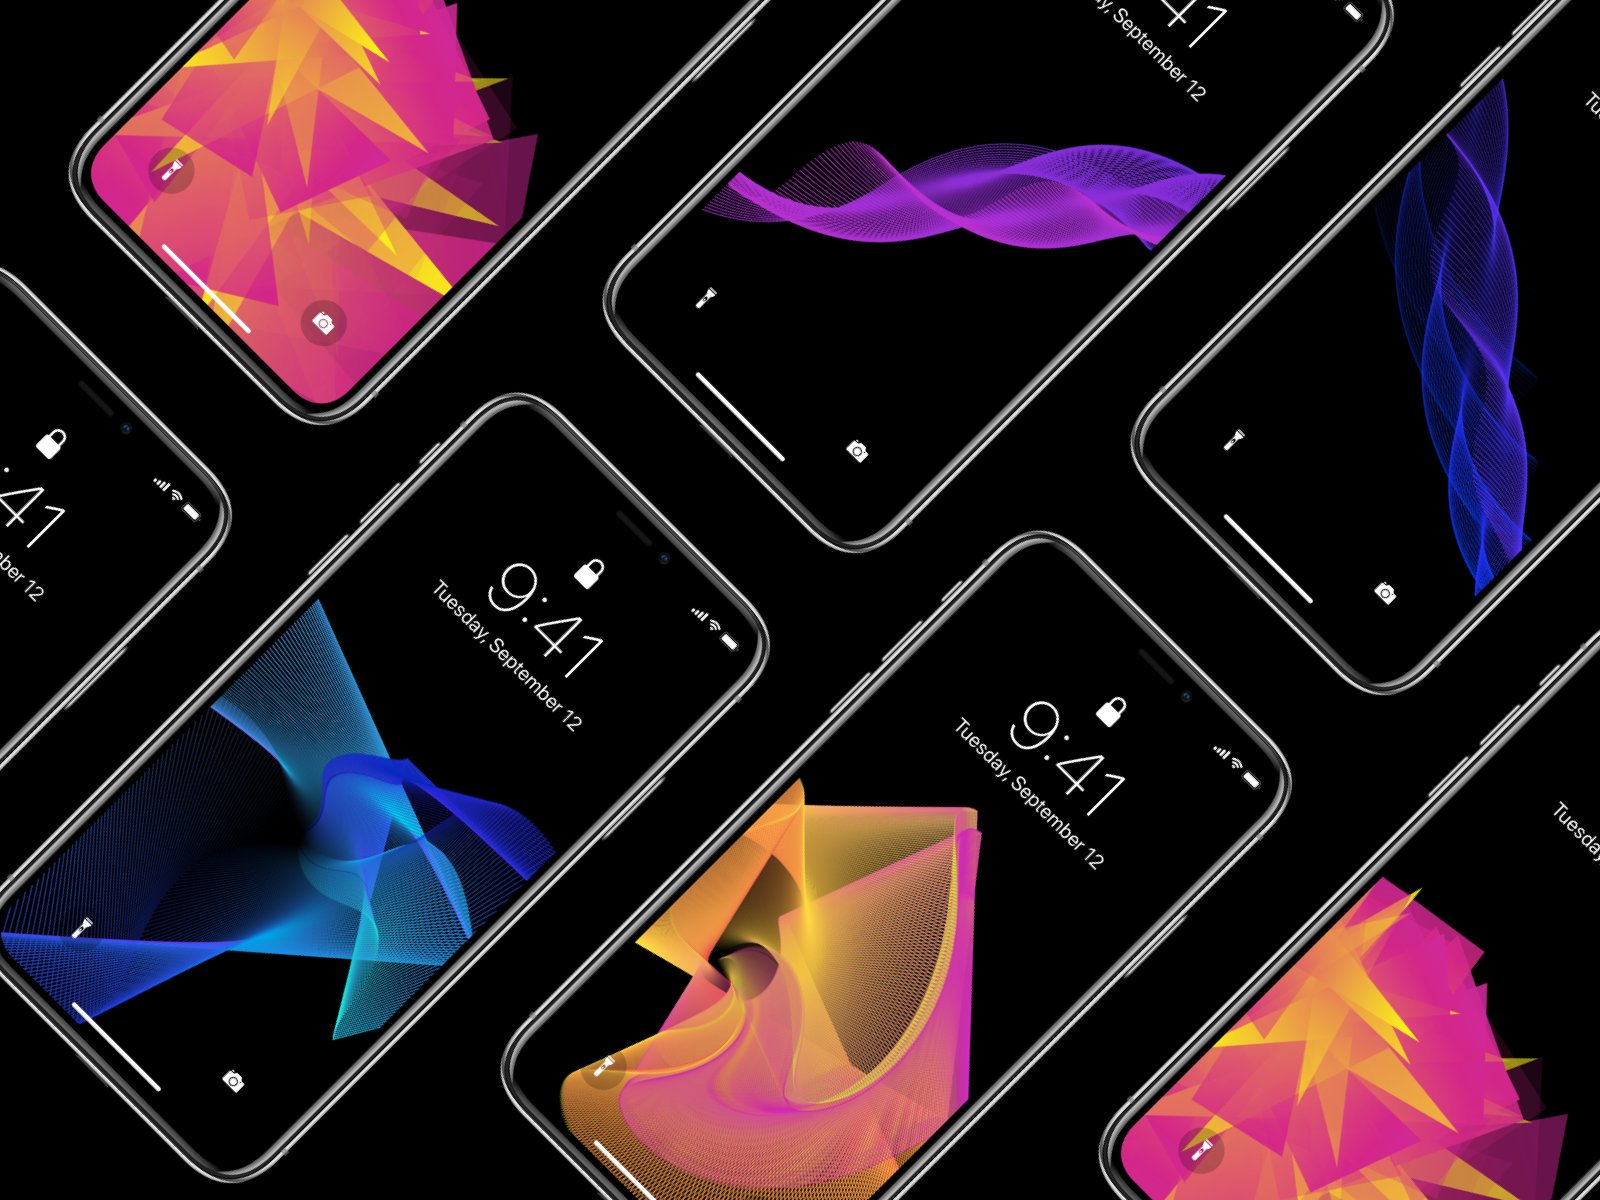 Colorful abstract iPhone wallpapers in a sea of black